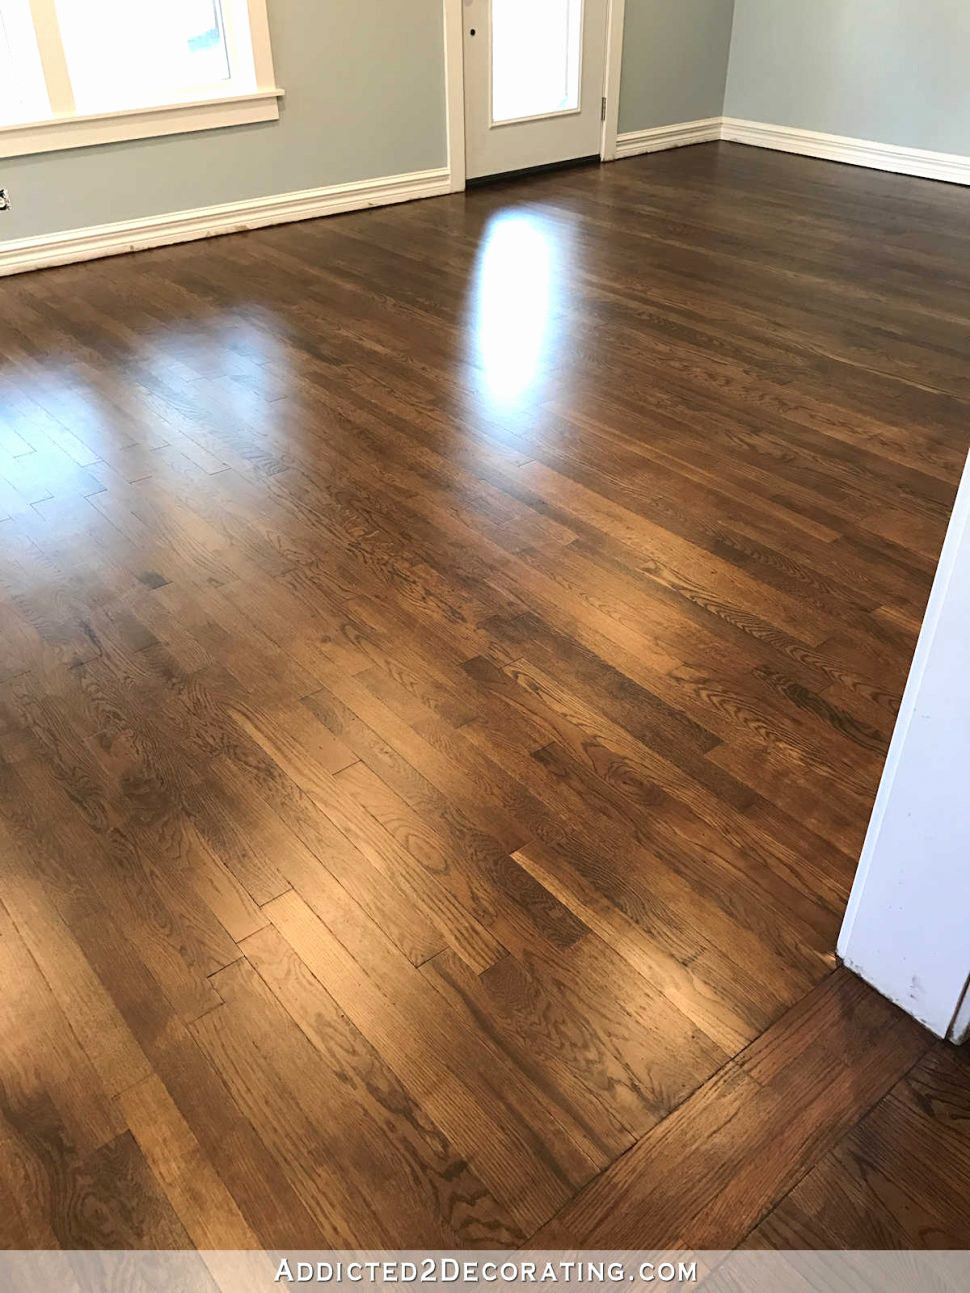 filling gaps in prefinished hardwood floors of inspirational fix refinishing hardwood floors without sanding home pertaining to inspirational fix refinishing hardwood floors without sanding